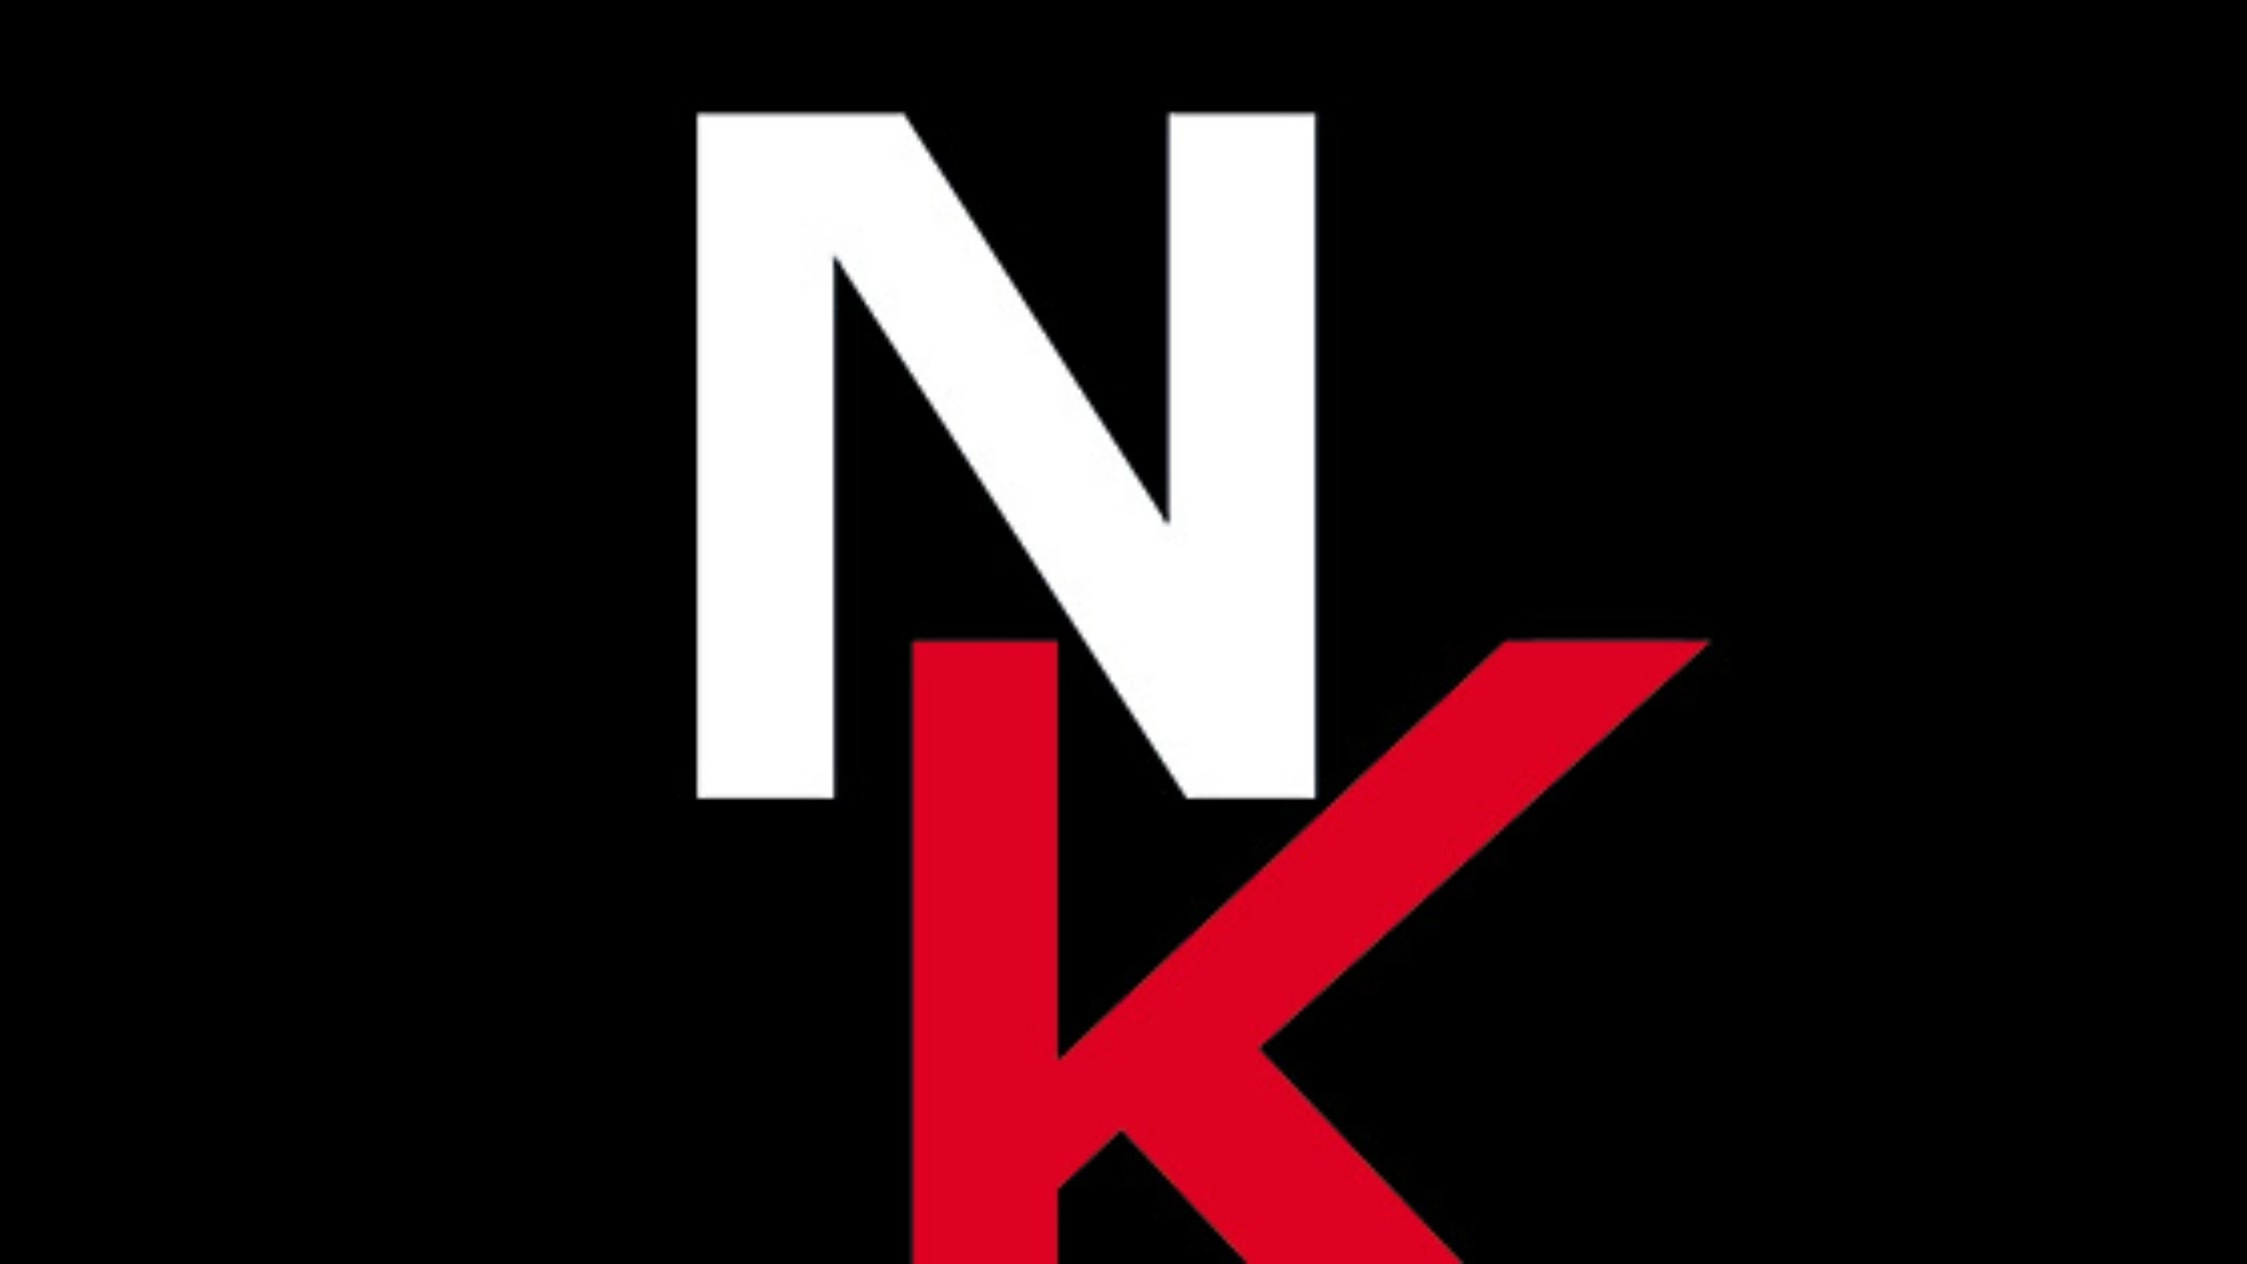 NK TOYS & ENTERTAINMENT